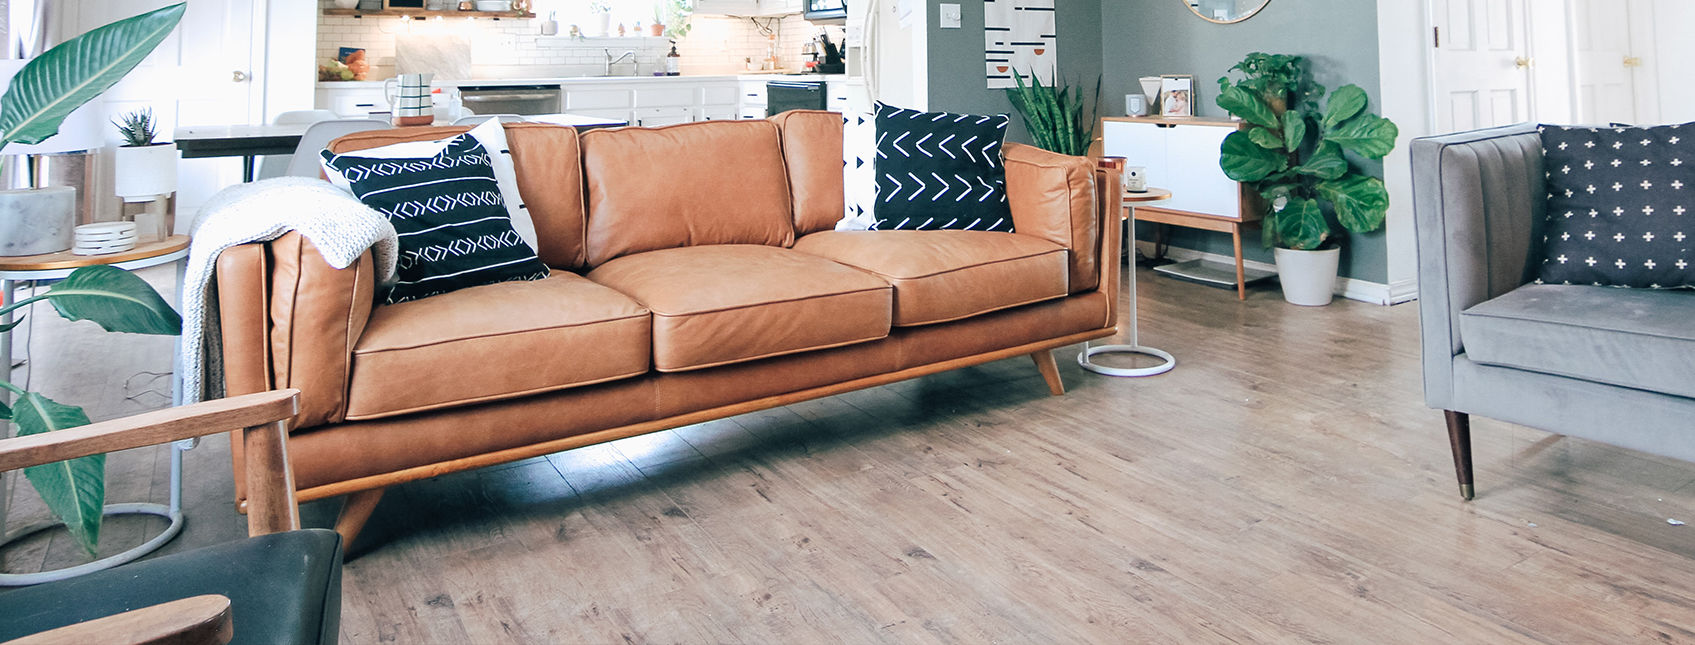 Go Hygge How To Get The Scandinavian Look In Your Home Jfj Wood Flooring